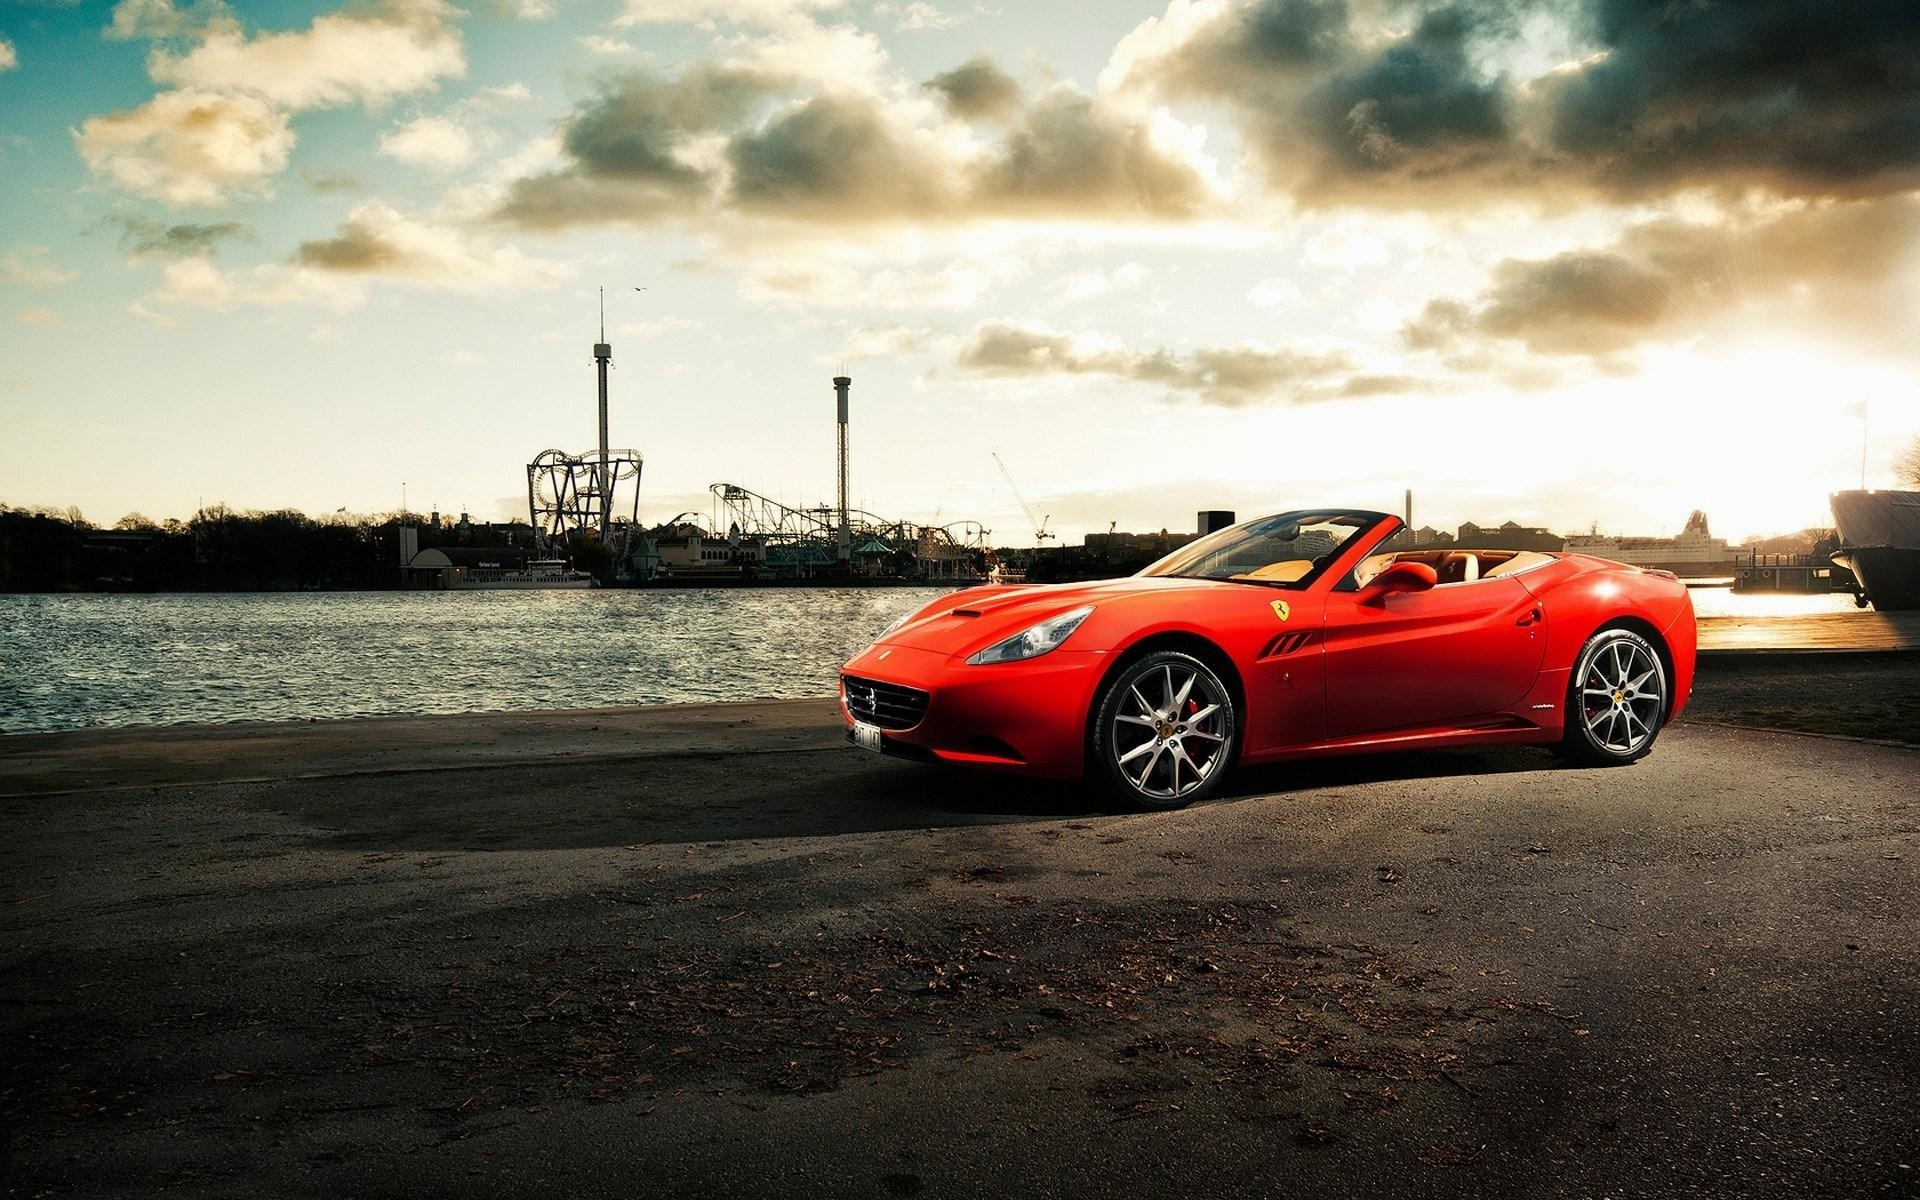 1920x1200 ferrari-california-t-hd-wallpapers-hd-wallpapers-fit